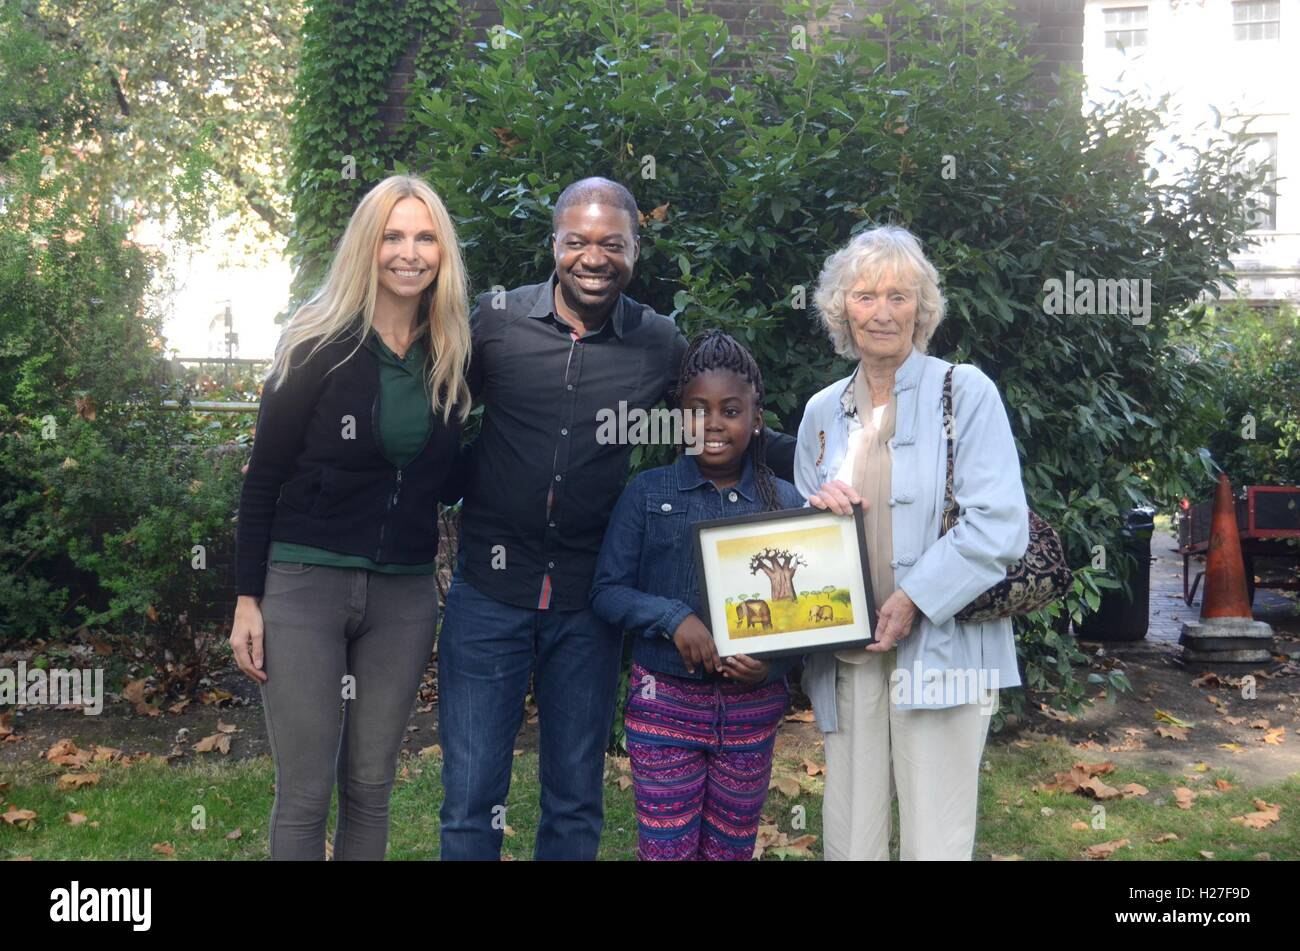 Virginia McKenna and Anneka Svenska meet animal rights protesters from Malawi. - Stock Image